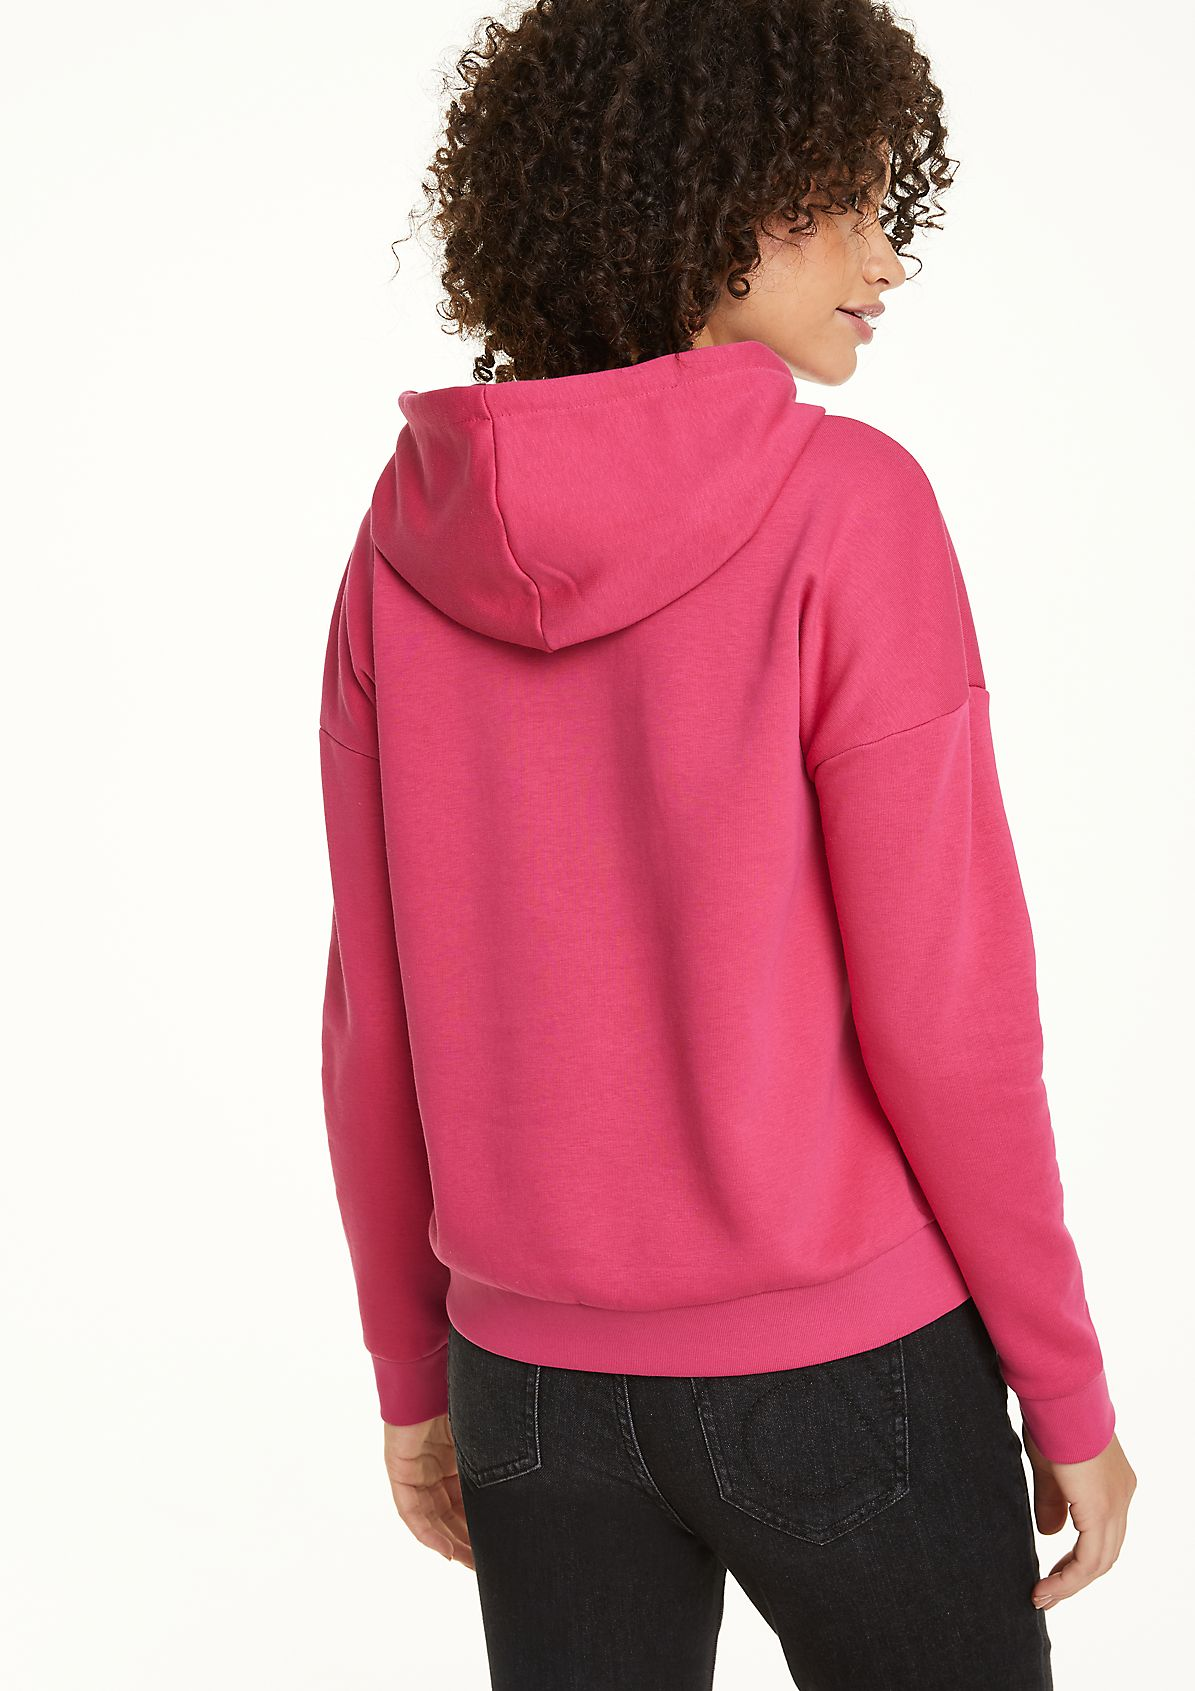 Hooded sweatshirt with a stylish logo print from comma